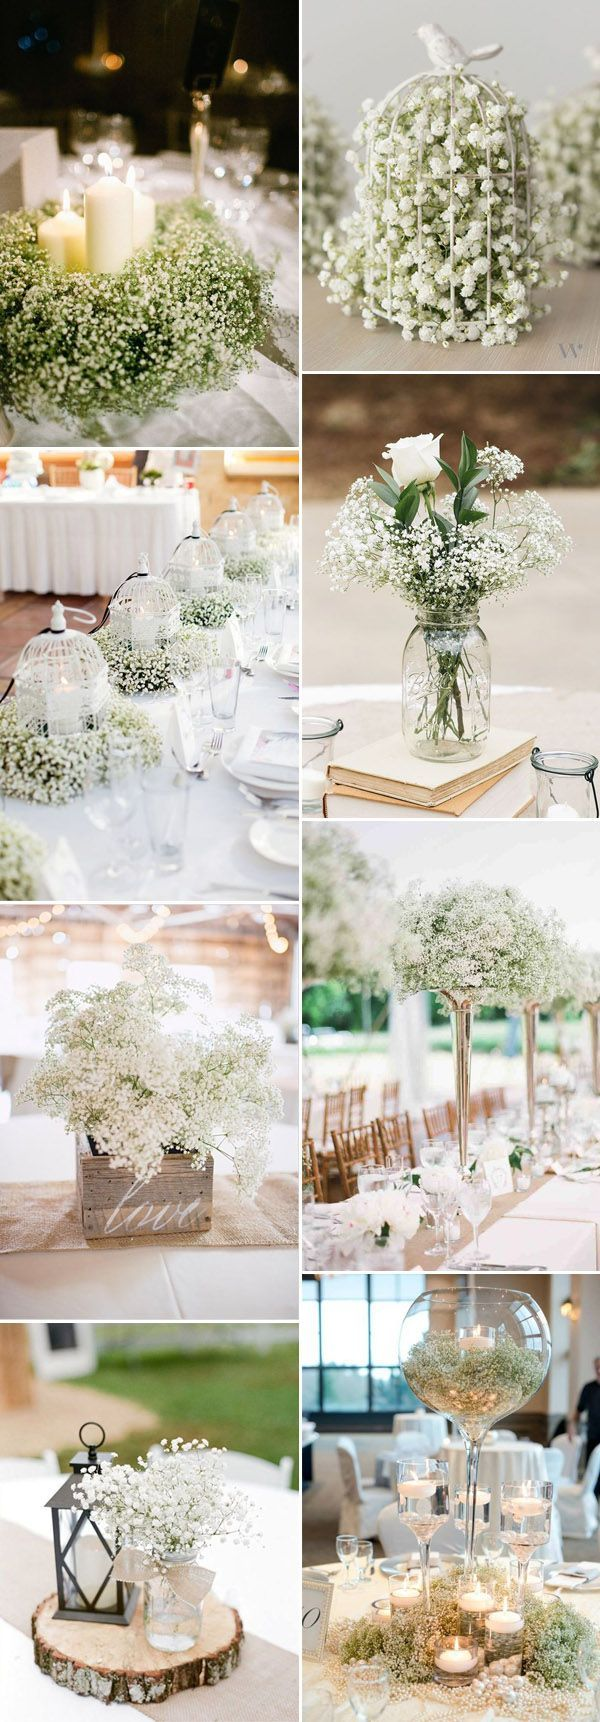 Diy wedding decorations vintage october 2018 Save Your Budget on Weddings with  Babyus Breath Ideas in